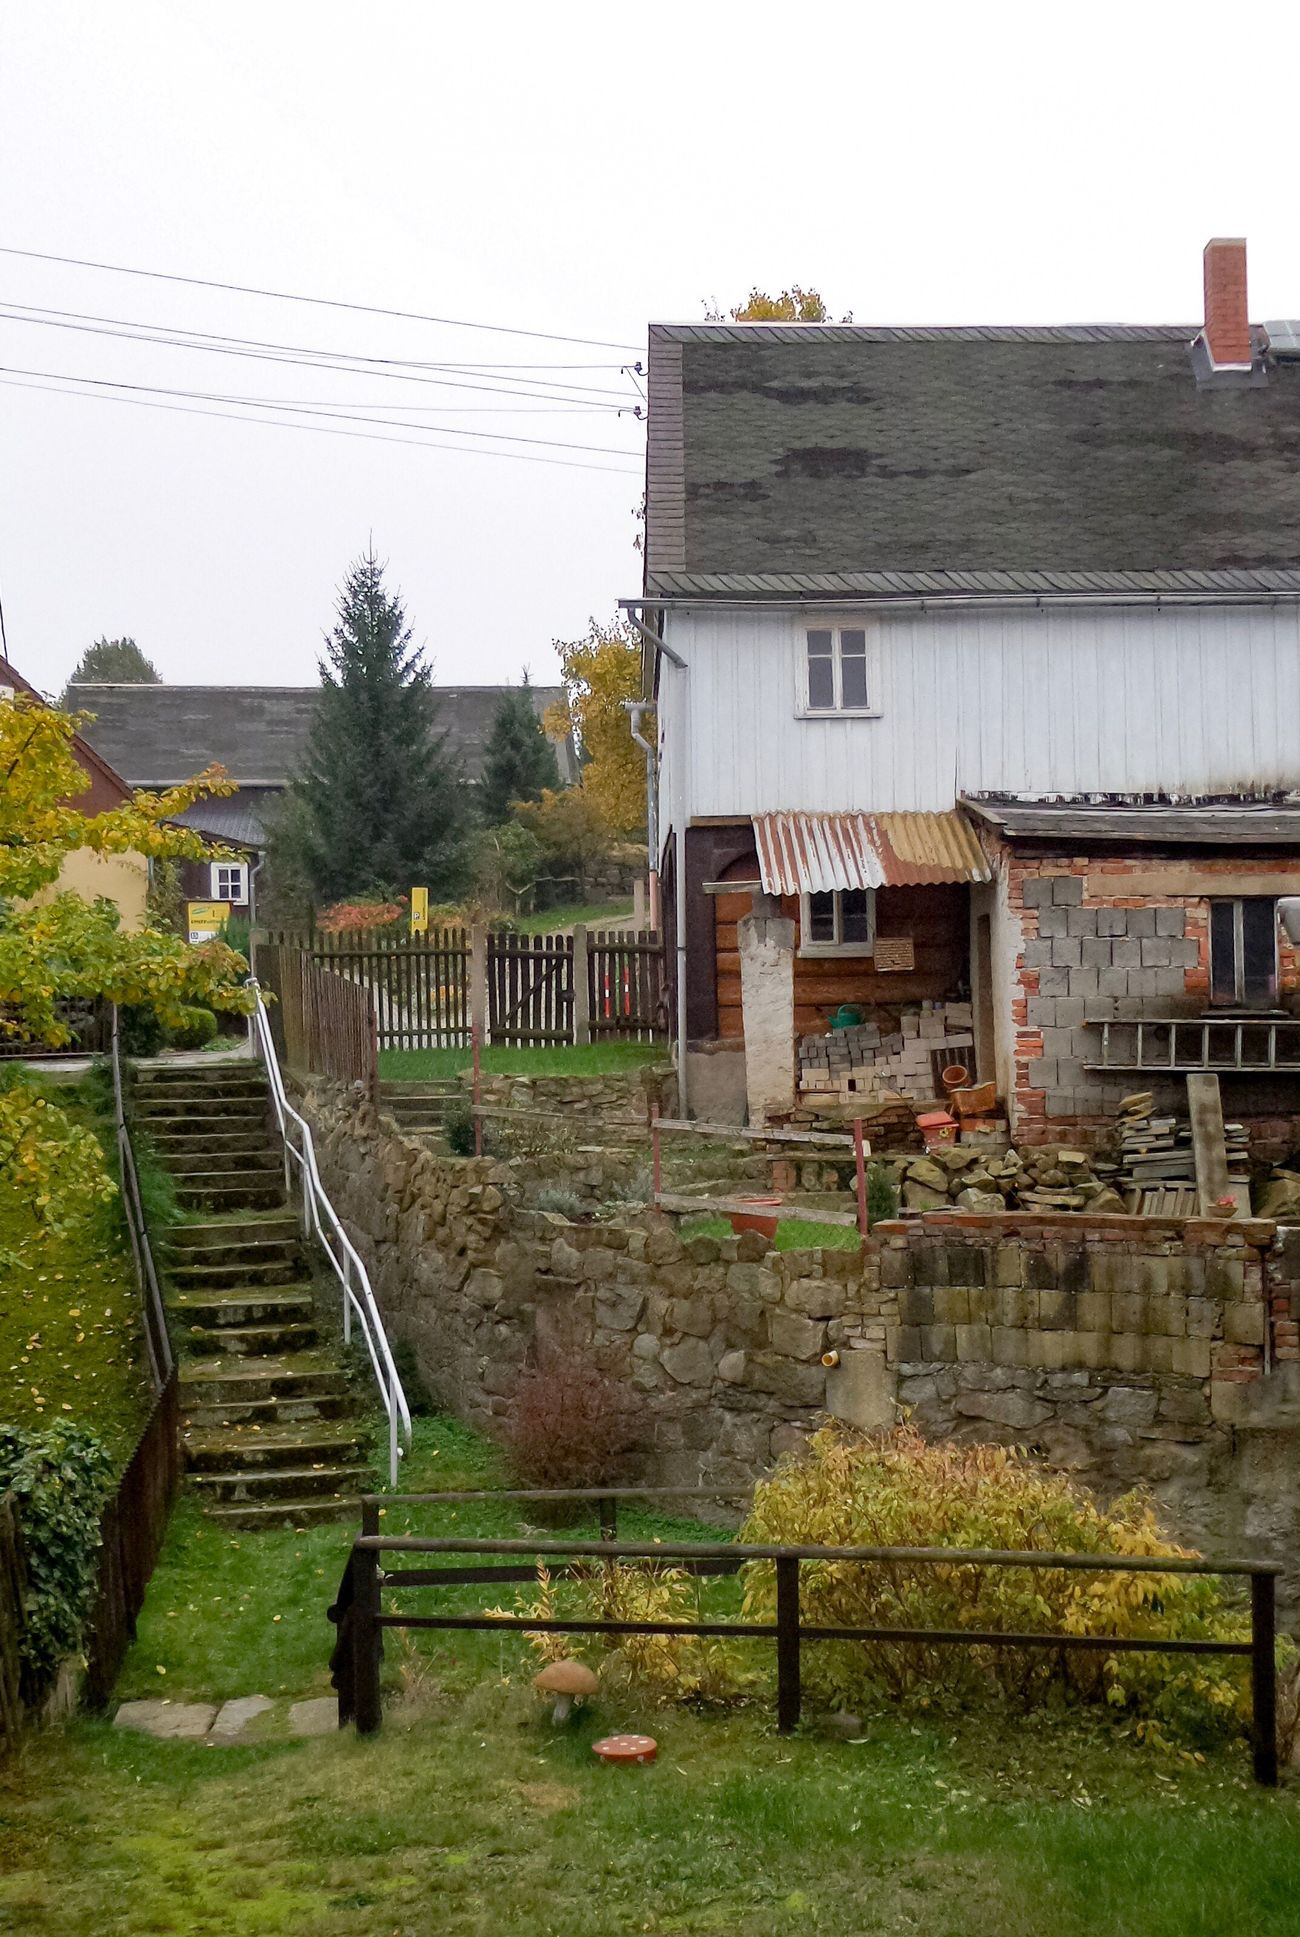 Rural idyll in the countryside of the Upperlusatia in Saxony - Germany. Built Structure Architecture House Building Exterior Outdoors No People Steps Residential Building Day Tree Sky Nature Autumn Stair Villagelife Impression Calm Tranquility